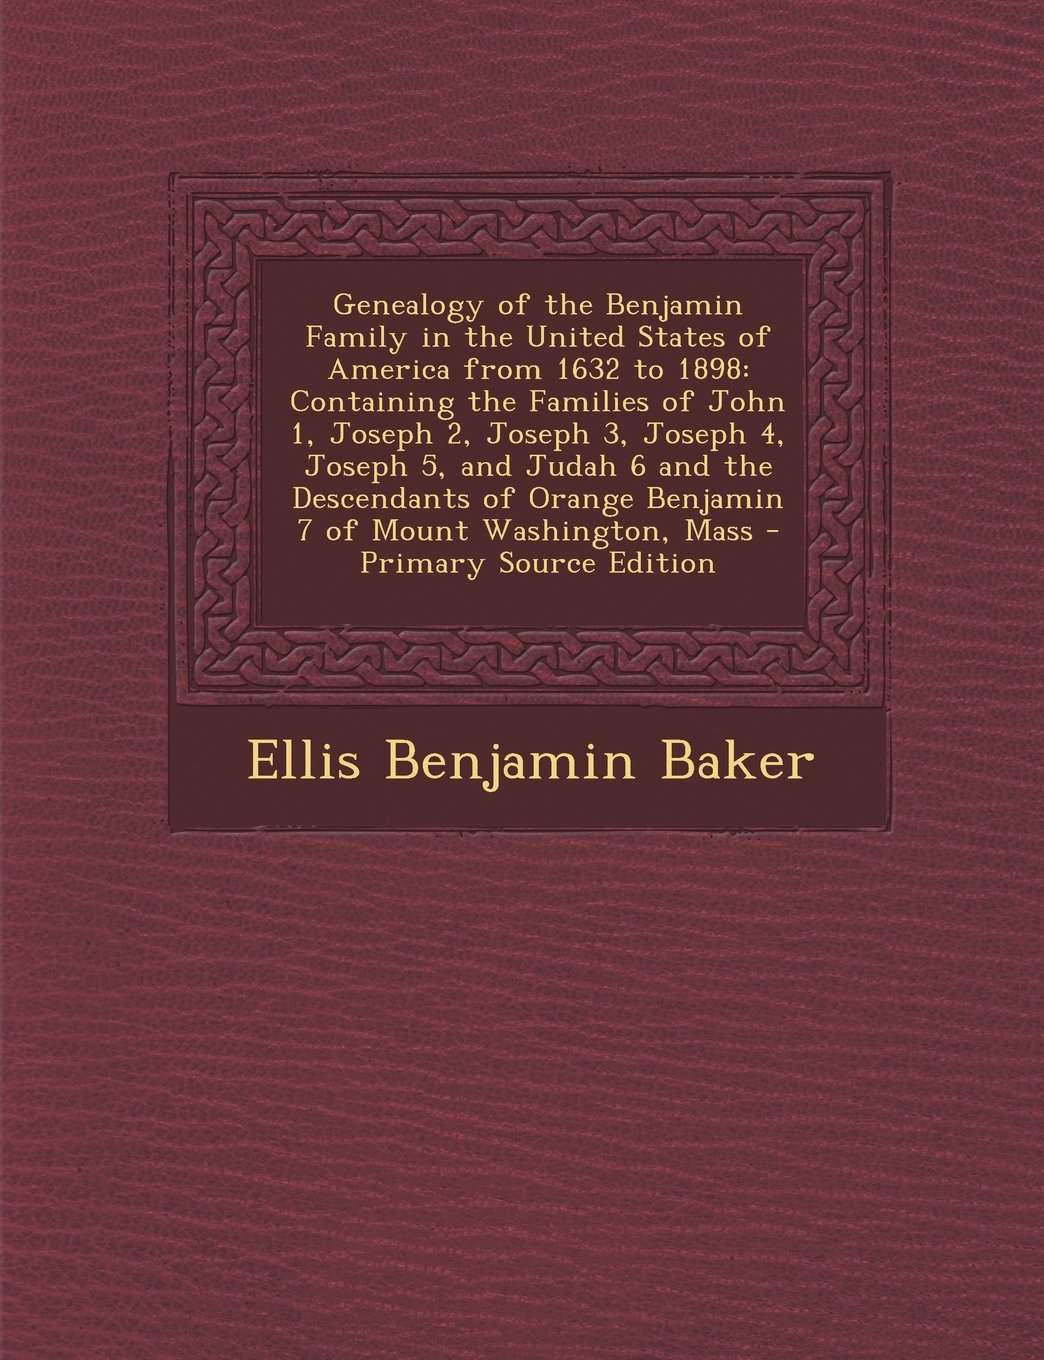 Read Online Genealogy of the Benjamin Family in the United States of America from 1632 to 1898: Containing the Families of John 1, Joseph 2, Joseph 3, Joseph 4, ... 7 of Mount Washington, Mass - Primary Source PDF